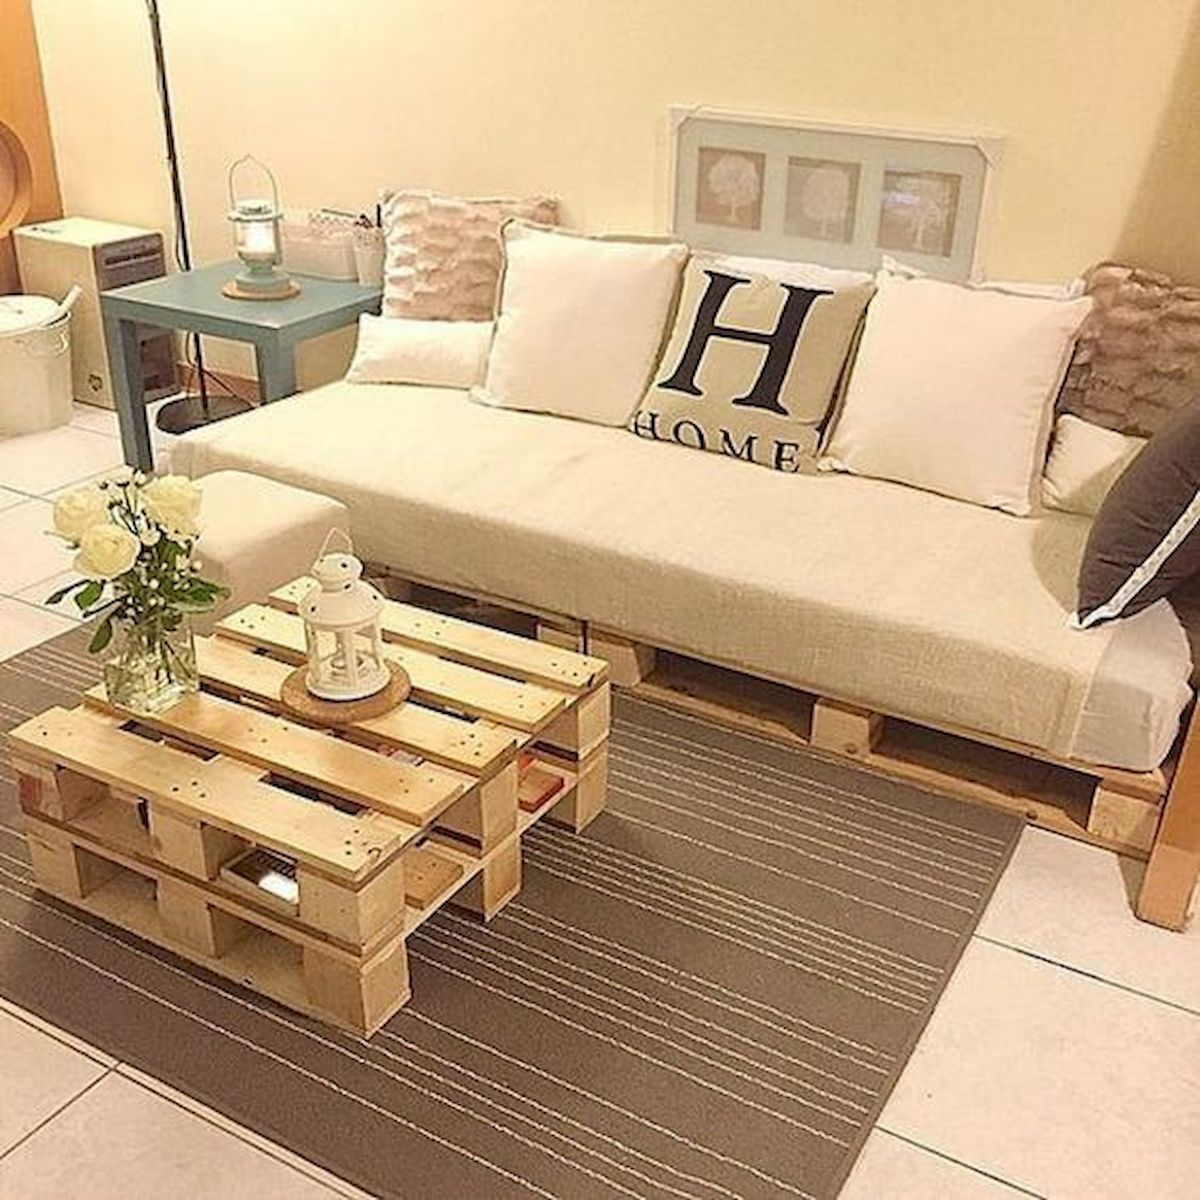 60 Summer Diy Projects Pallet Sofa Design Ideas And Remodel Worldecor Co Palette Furniture Diy Pallet Furniture Pallet Designs